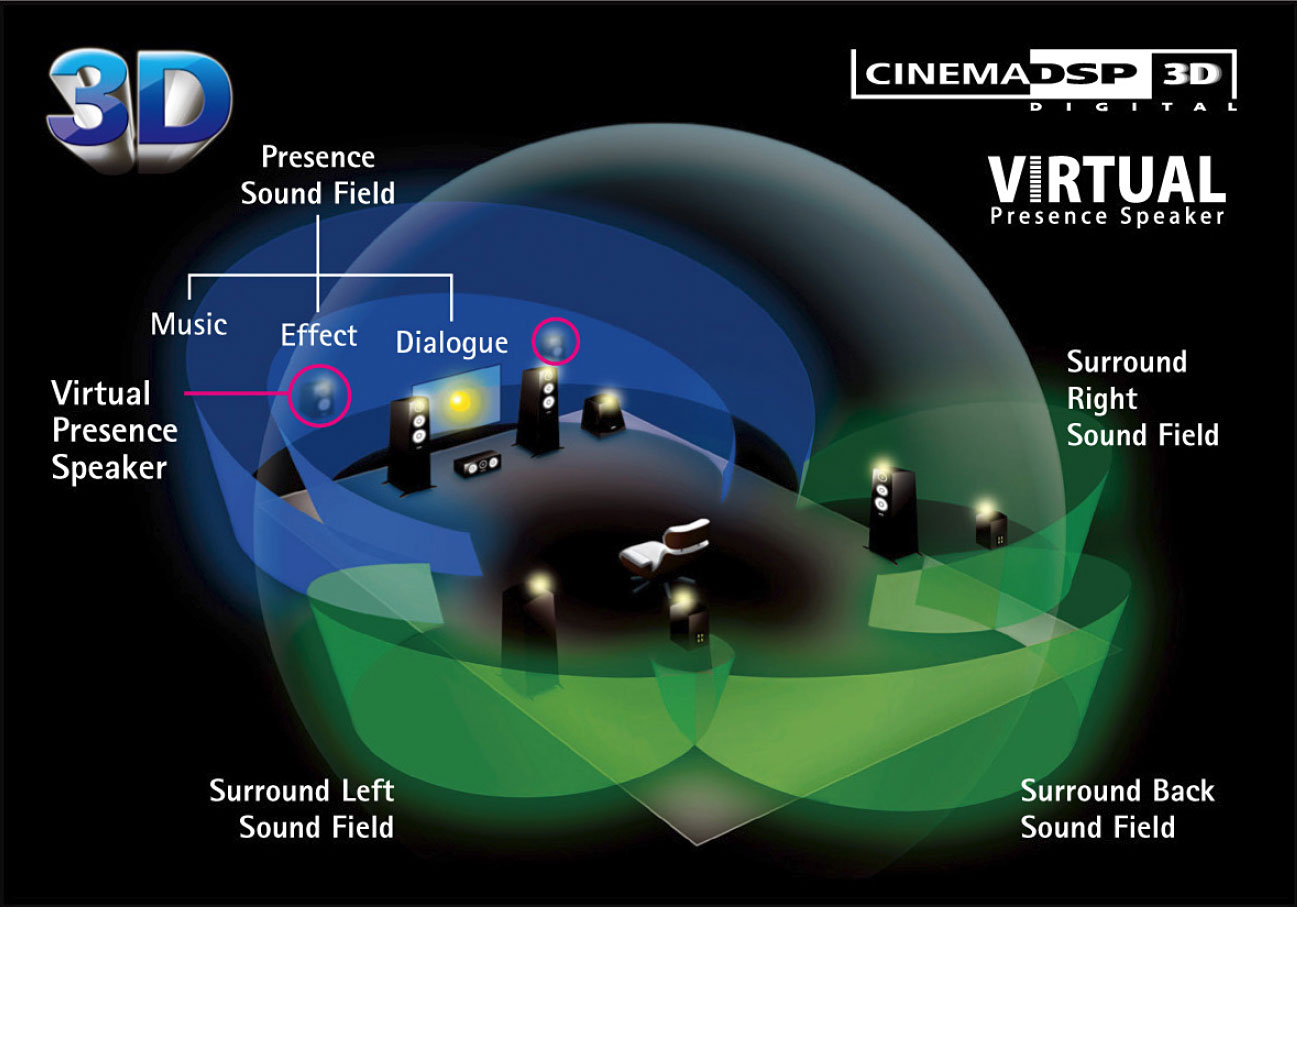 HD Audio with CINEMA DSP 3D and Virtual Presence Speaker